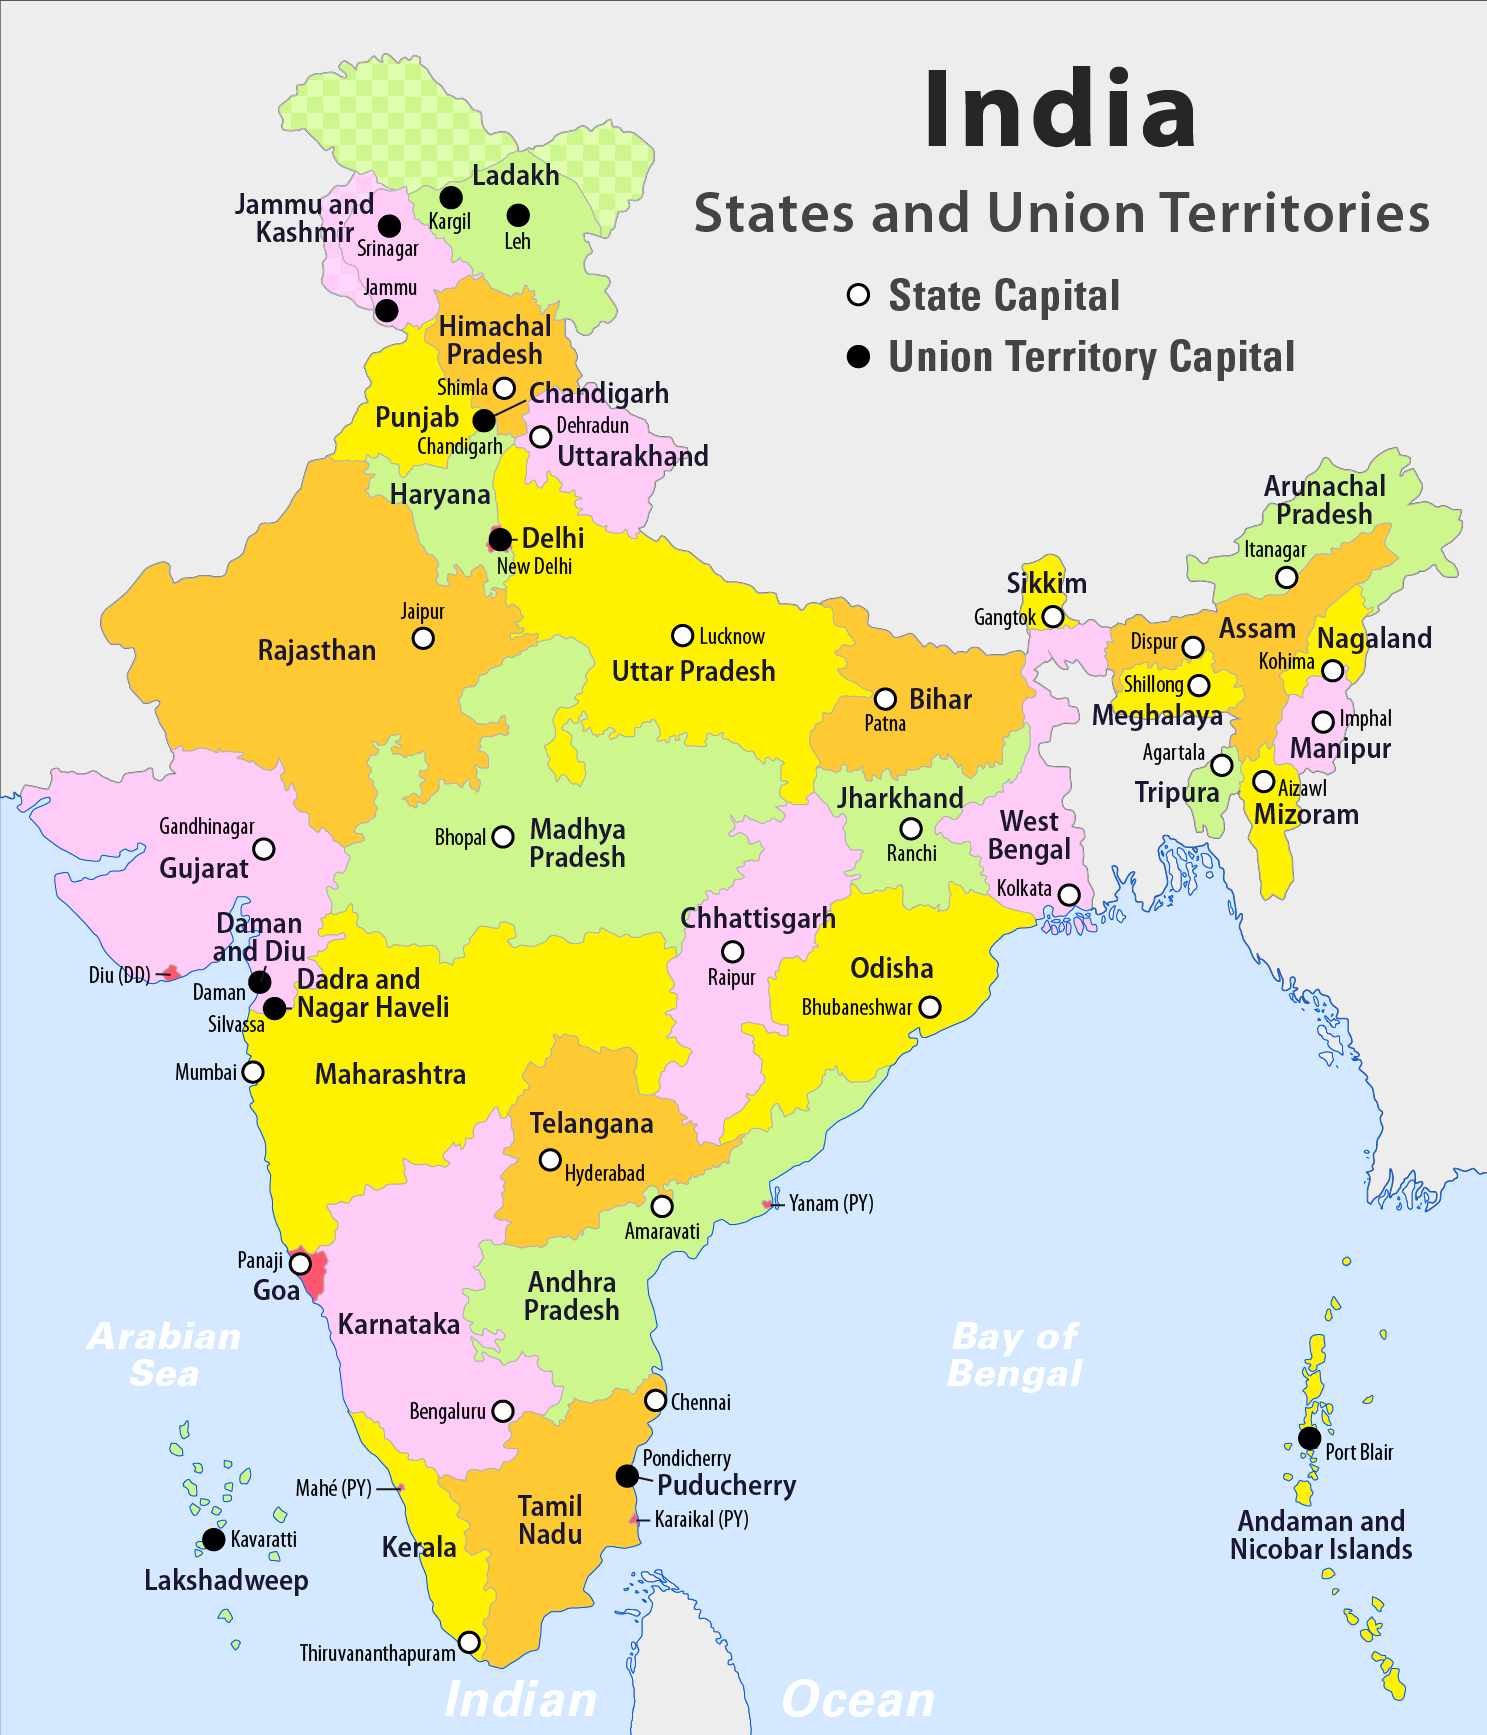 Tourism in India by state - Wikipedia on visakhapatnam india map, india political map, danish india map, maharashtra india map, kannauj india map, asia india map, hindi india map, rajasthan india map, guarani india map, nepali india map, pradesh india map, bangla india map, tamil india map, kannada india map, portuguese india map, dutch india map, hyderabad india map, kerala india map, chennai india map, india the early cultures map,